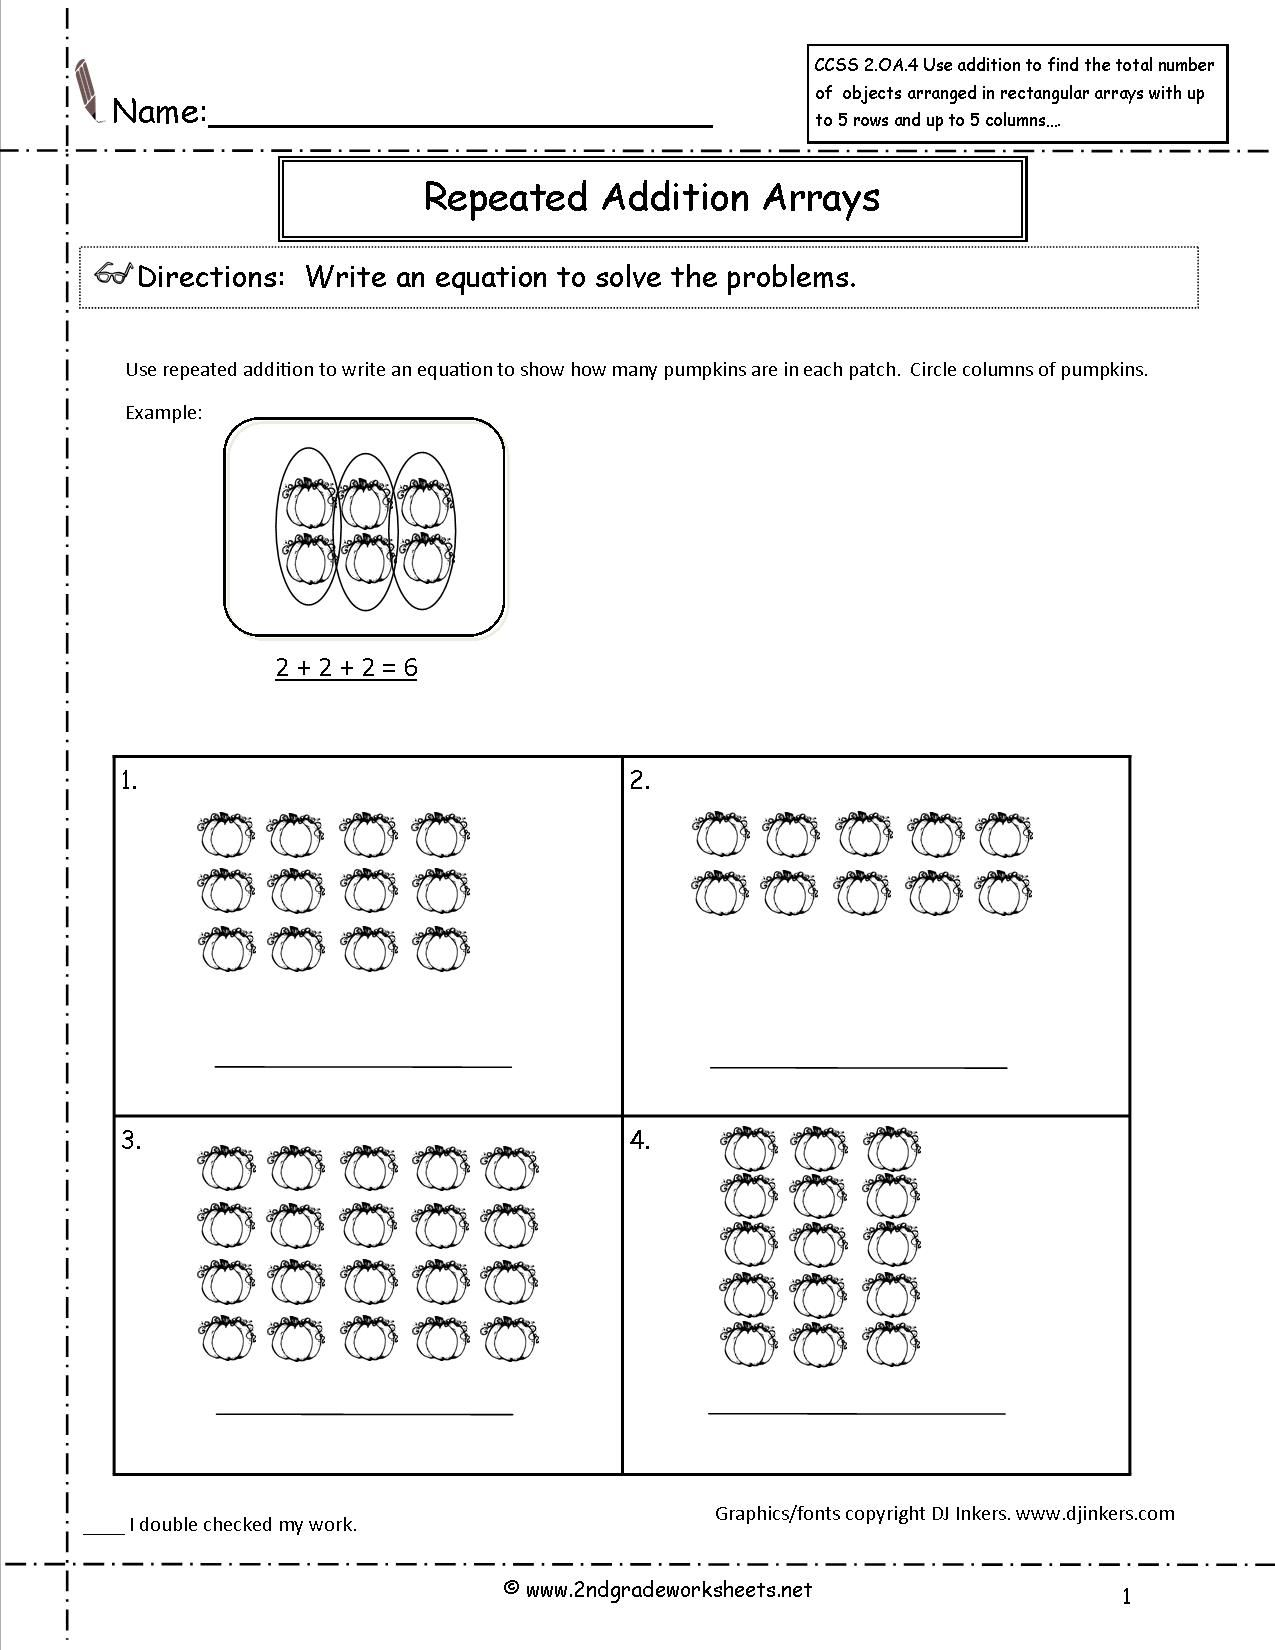 Pumpkins Repeated Addition Worksheet With Images Word Problem